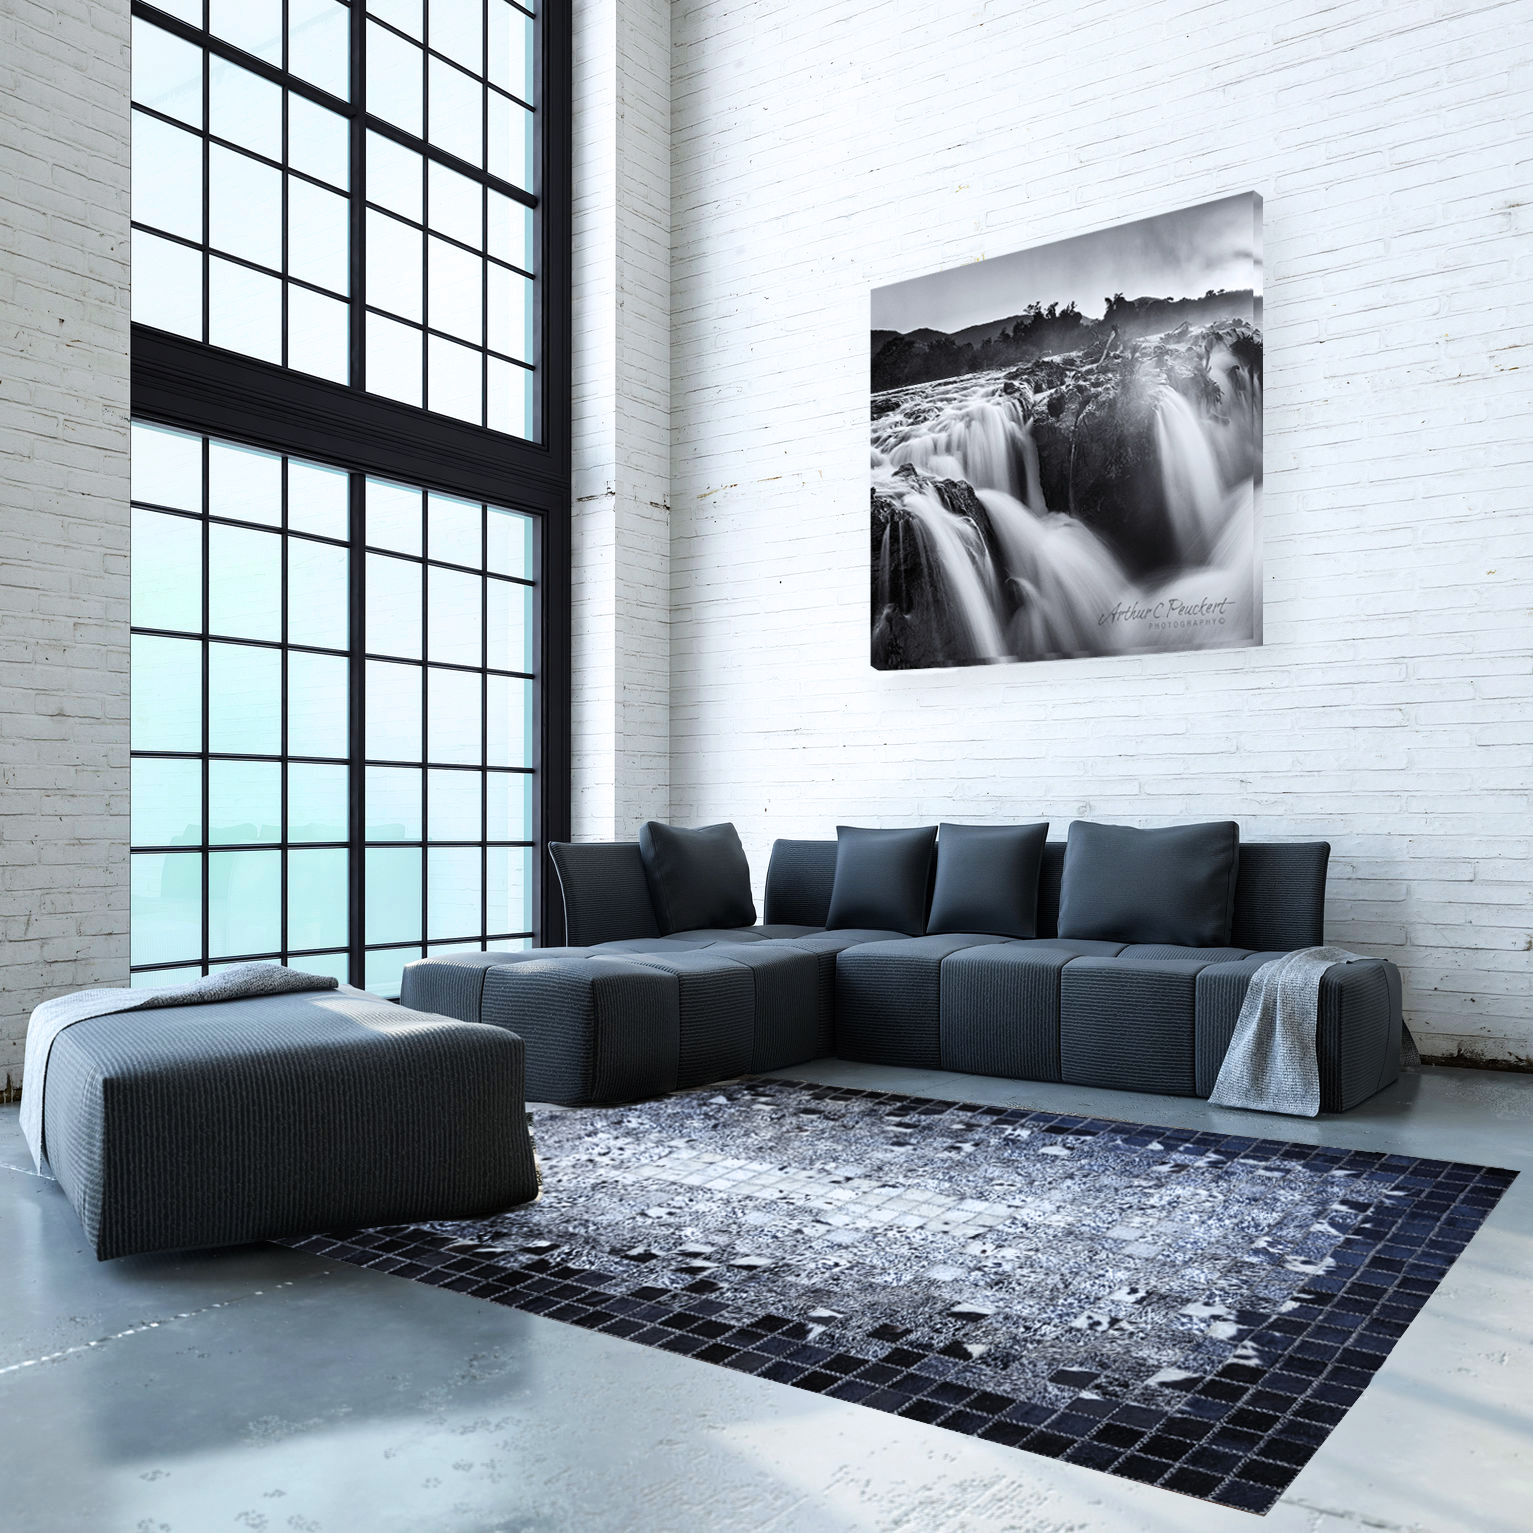 Spacious double volume living room interior with minimalist sofas and rug in the corner in front of large floor to ceiling windows. 3d Rendering.